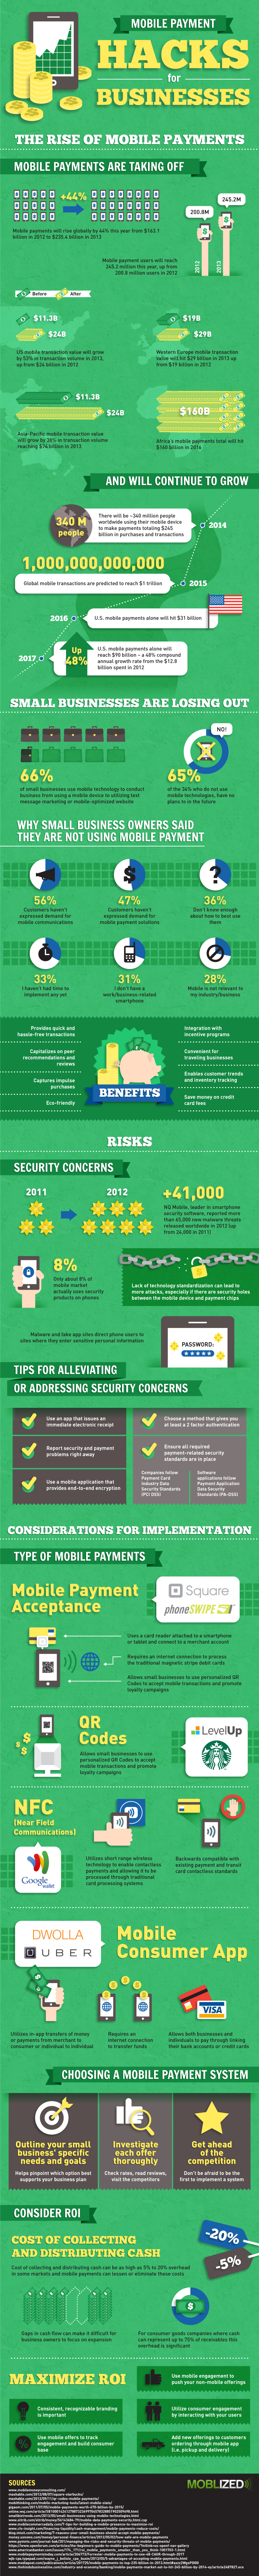 Mobile payment hacks for businesses infographic1